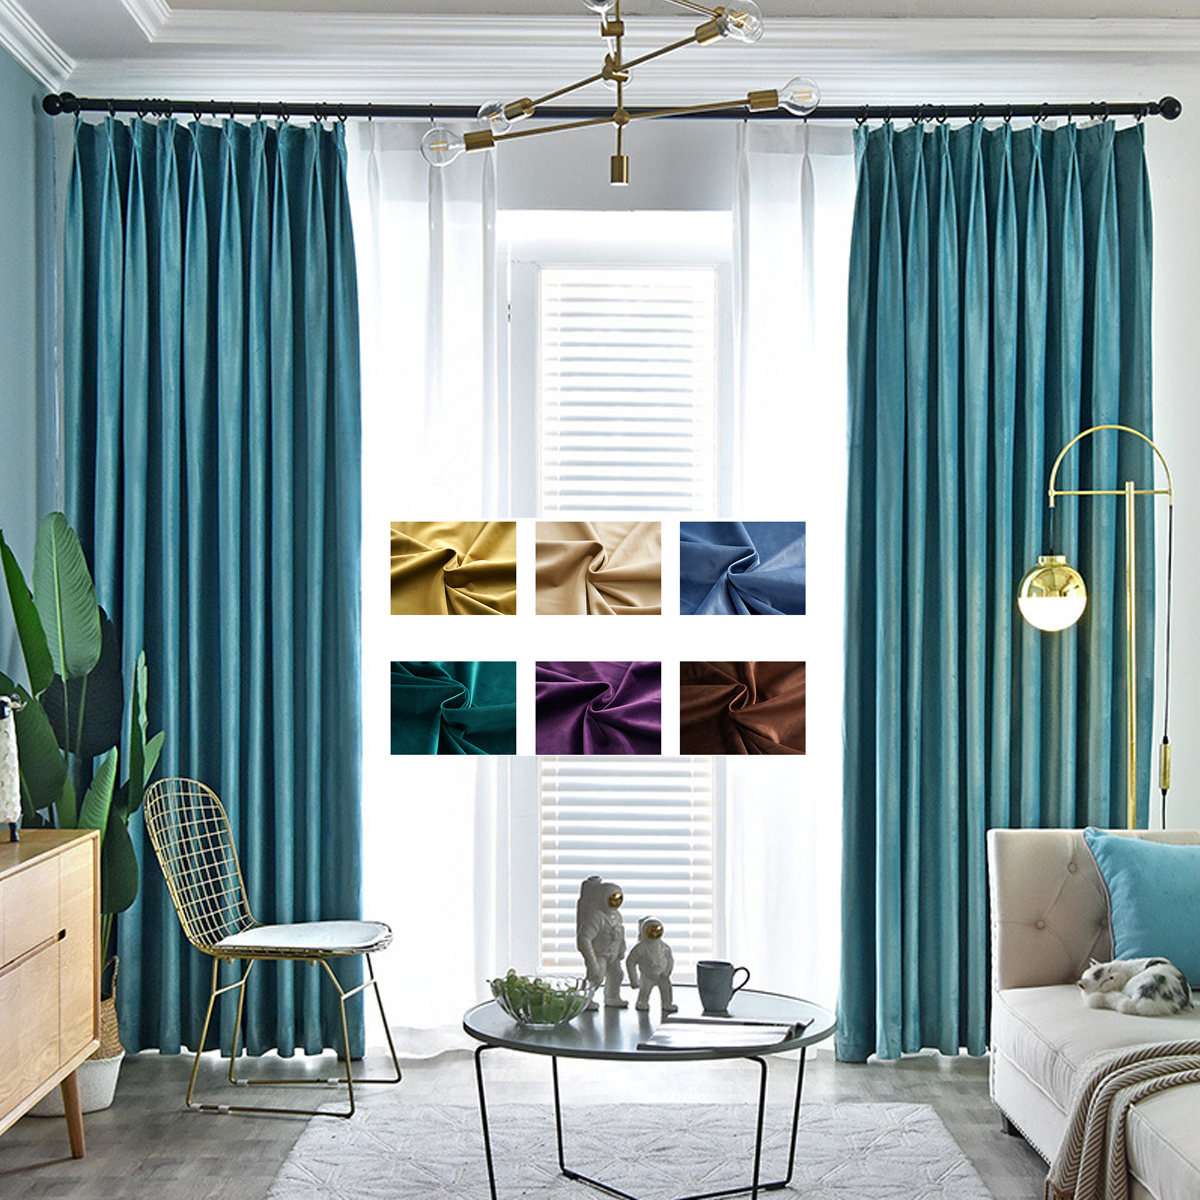 Velvet Curtains Drape Blackout Tulle Bedroom Window Living-Room Brown Blue Yellow Green